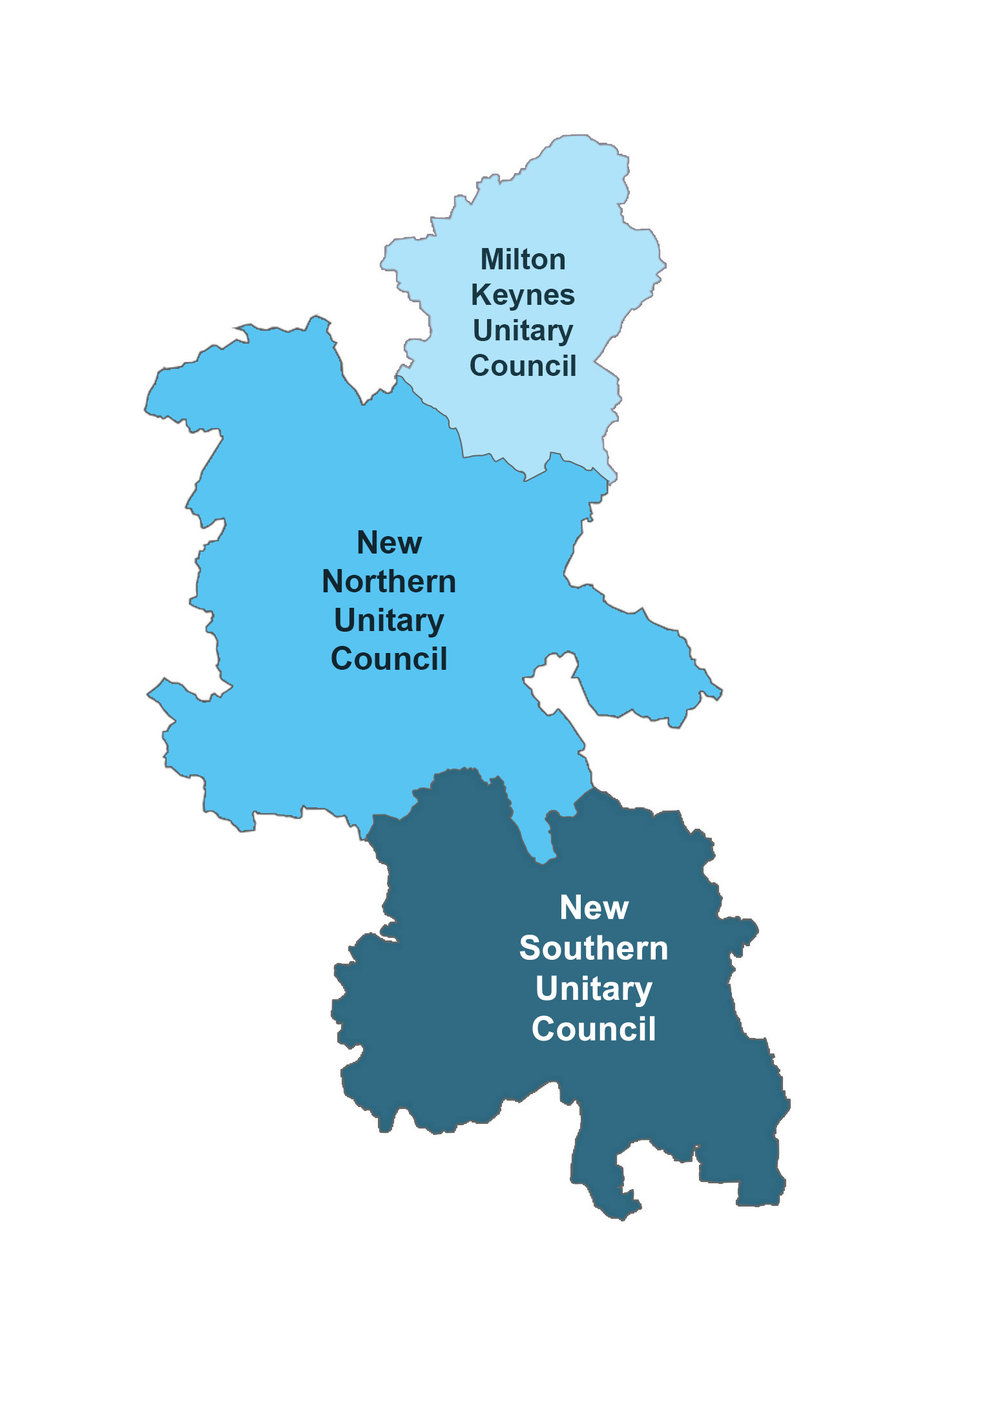 New Northern and Southern Unitary